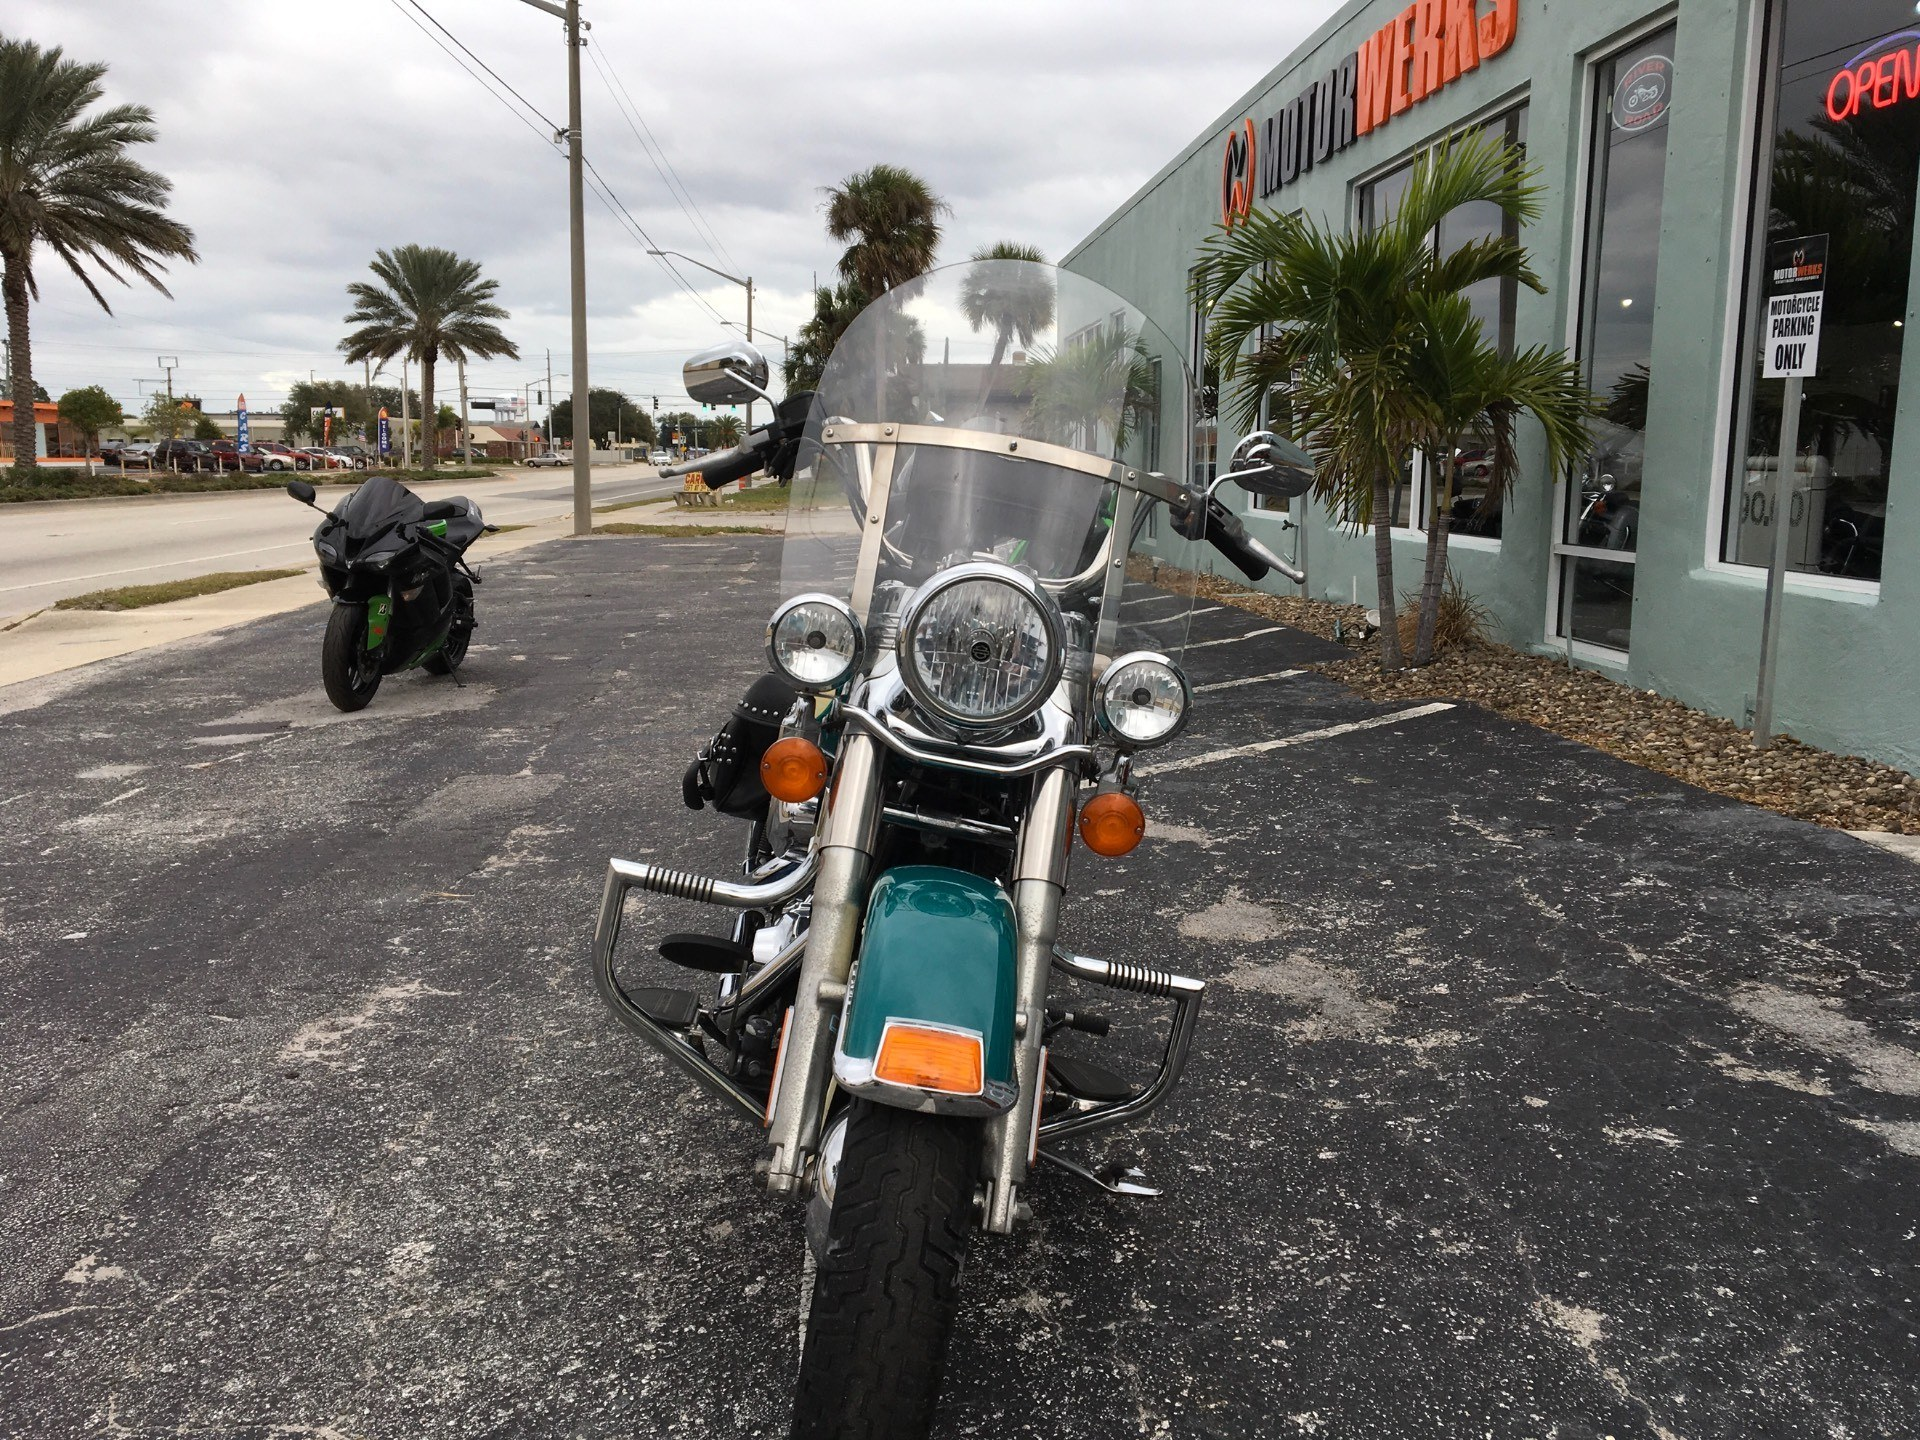 2009 Harley-Davidson Heritage softail classic in Cocoa, Florida - Photo 3